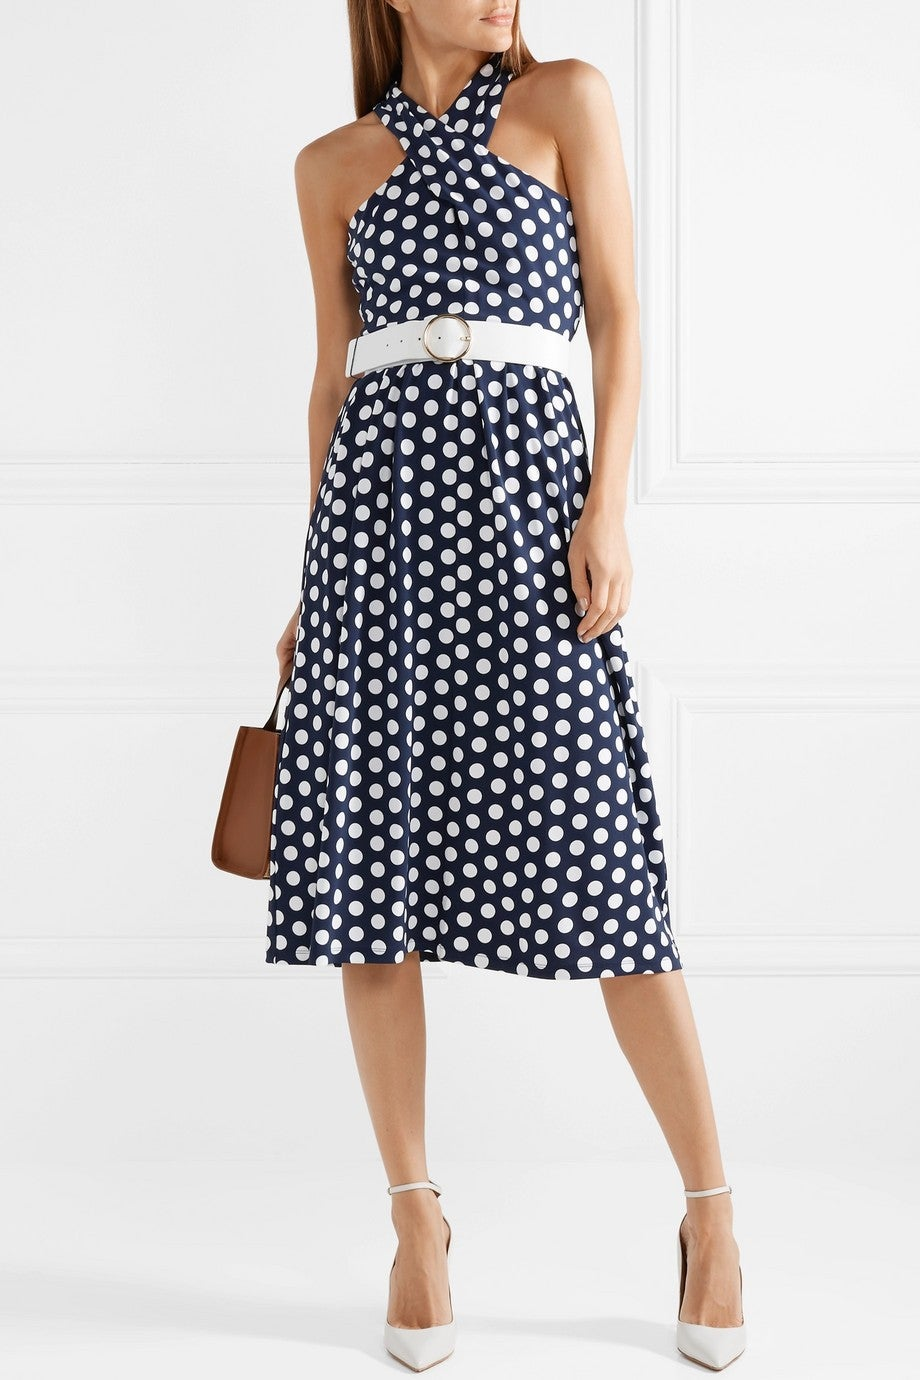 Michael Michael Kors polka dot dress